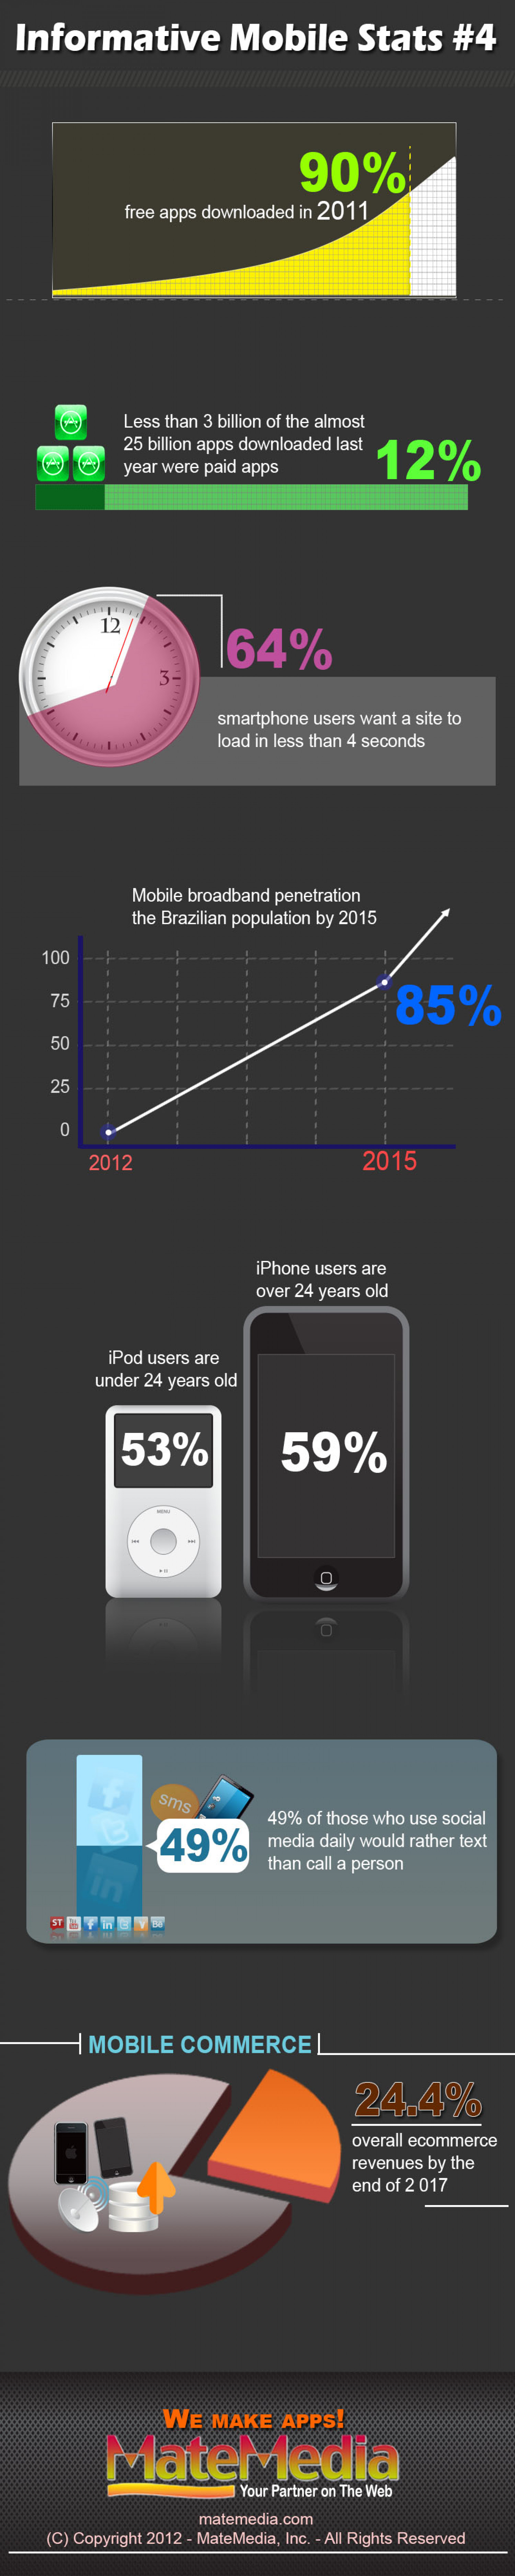 Informative Mobile Stats #4 Infographic